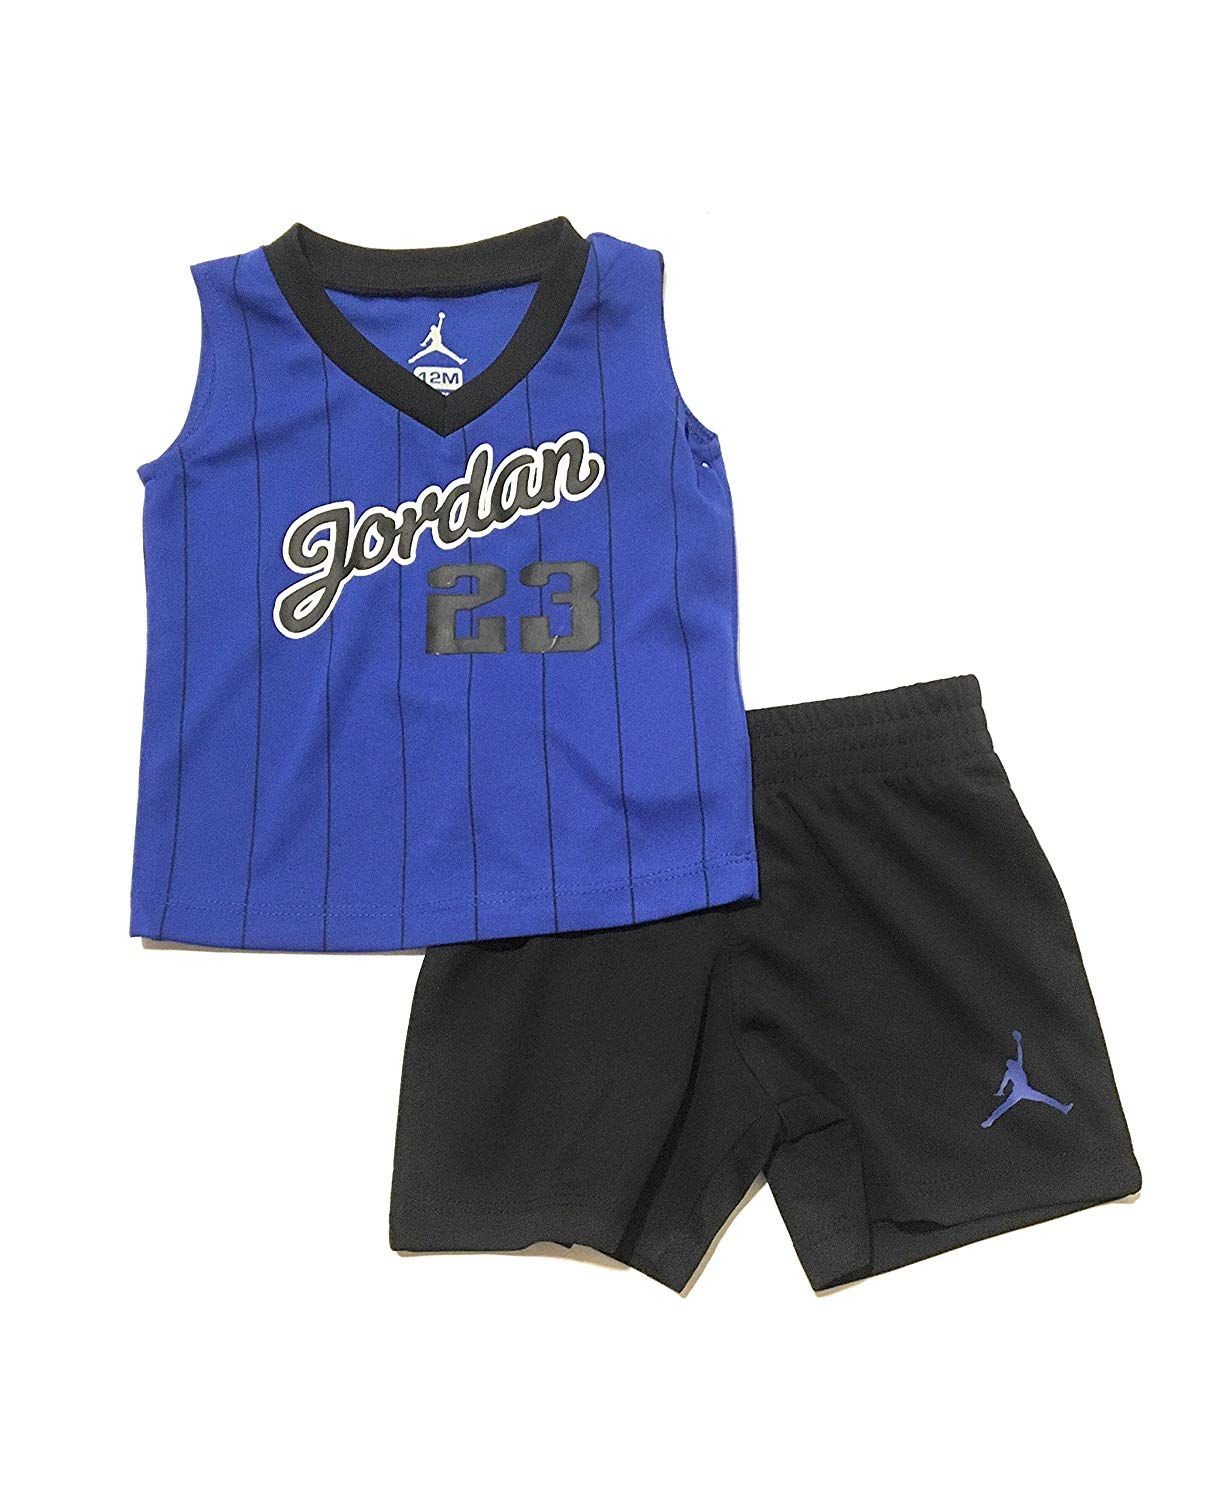 cd41b9dc295111 Get Quotations · Jordan Infant Boys Tank Top and Shorts Set Hyper Royal  Size 12 Months